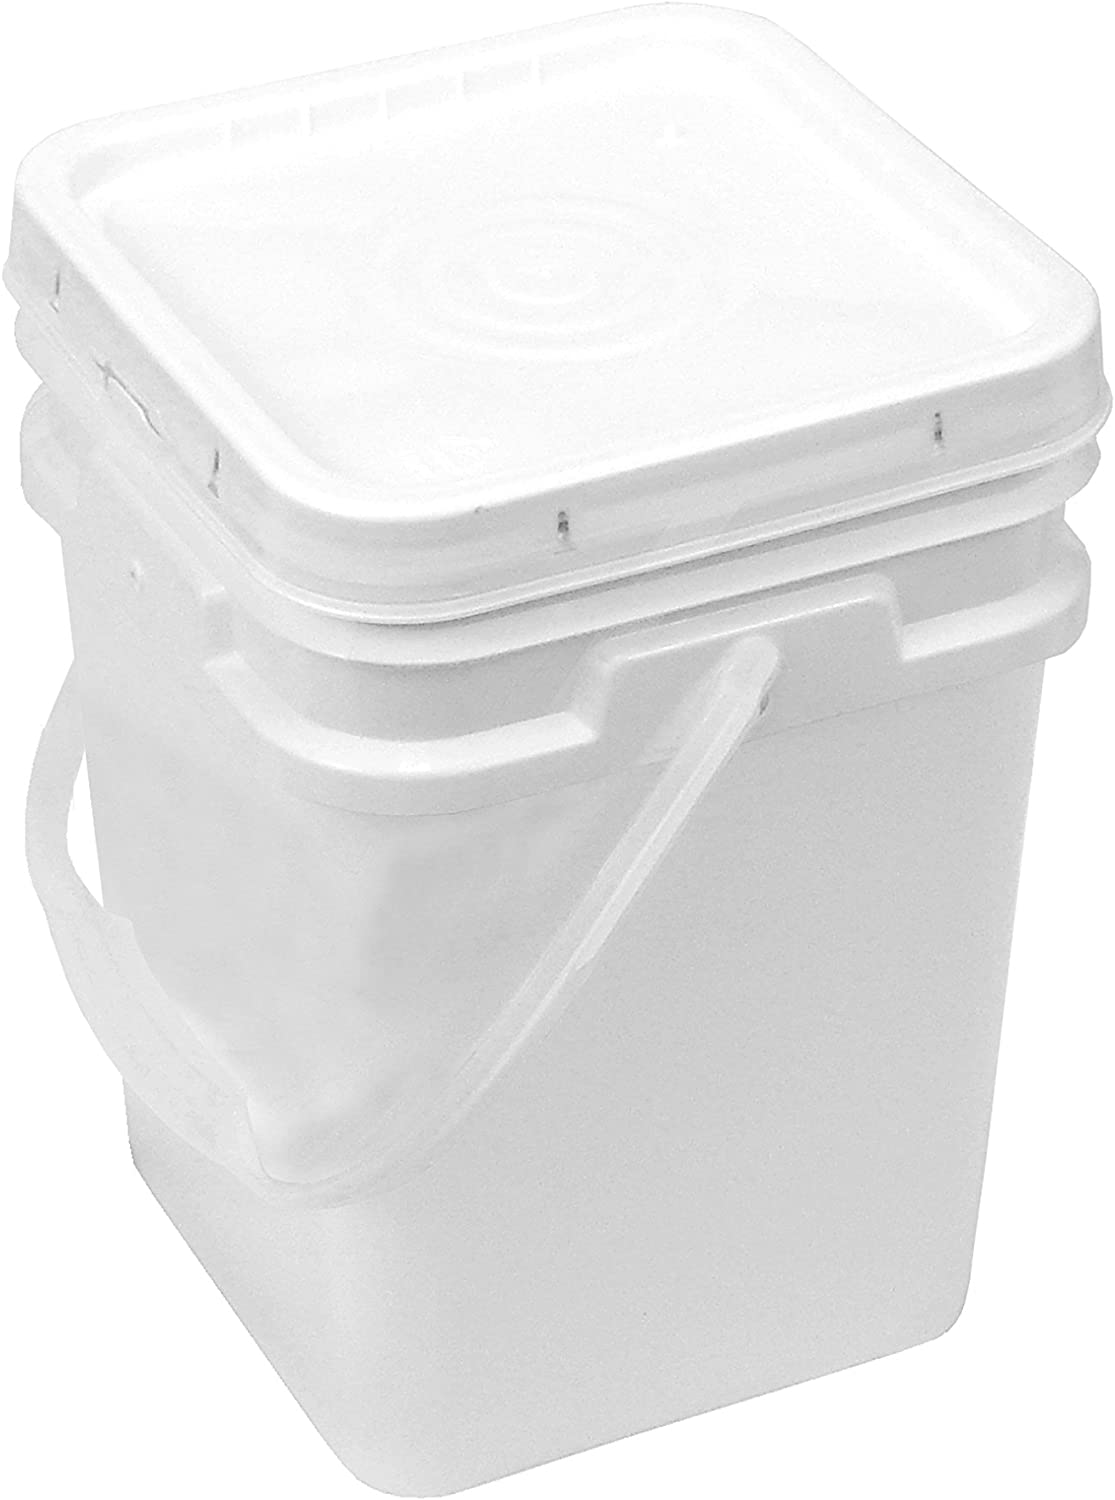 Square Bucket 4-Gallon Bucket with White Snap-on Lid with Gasket